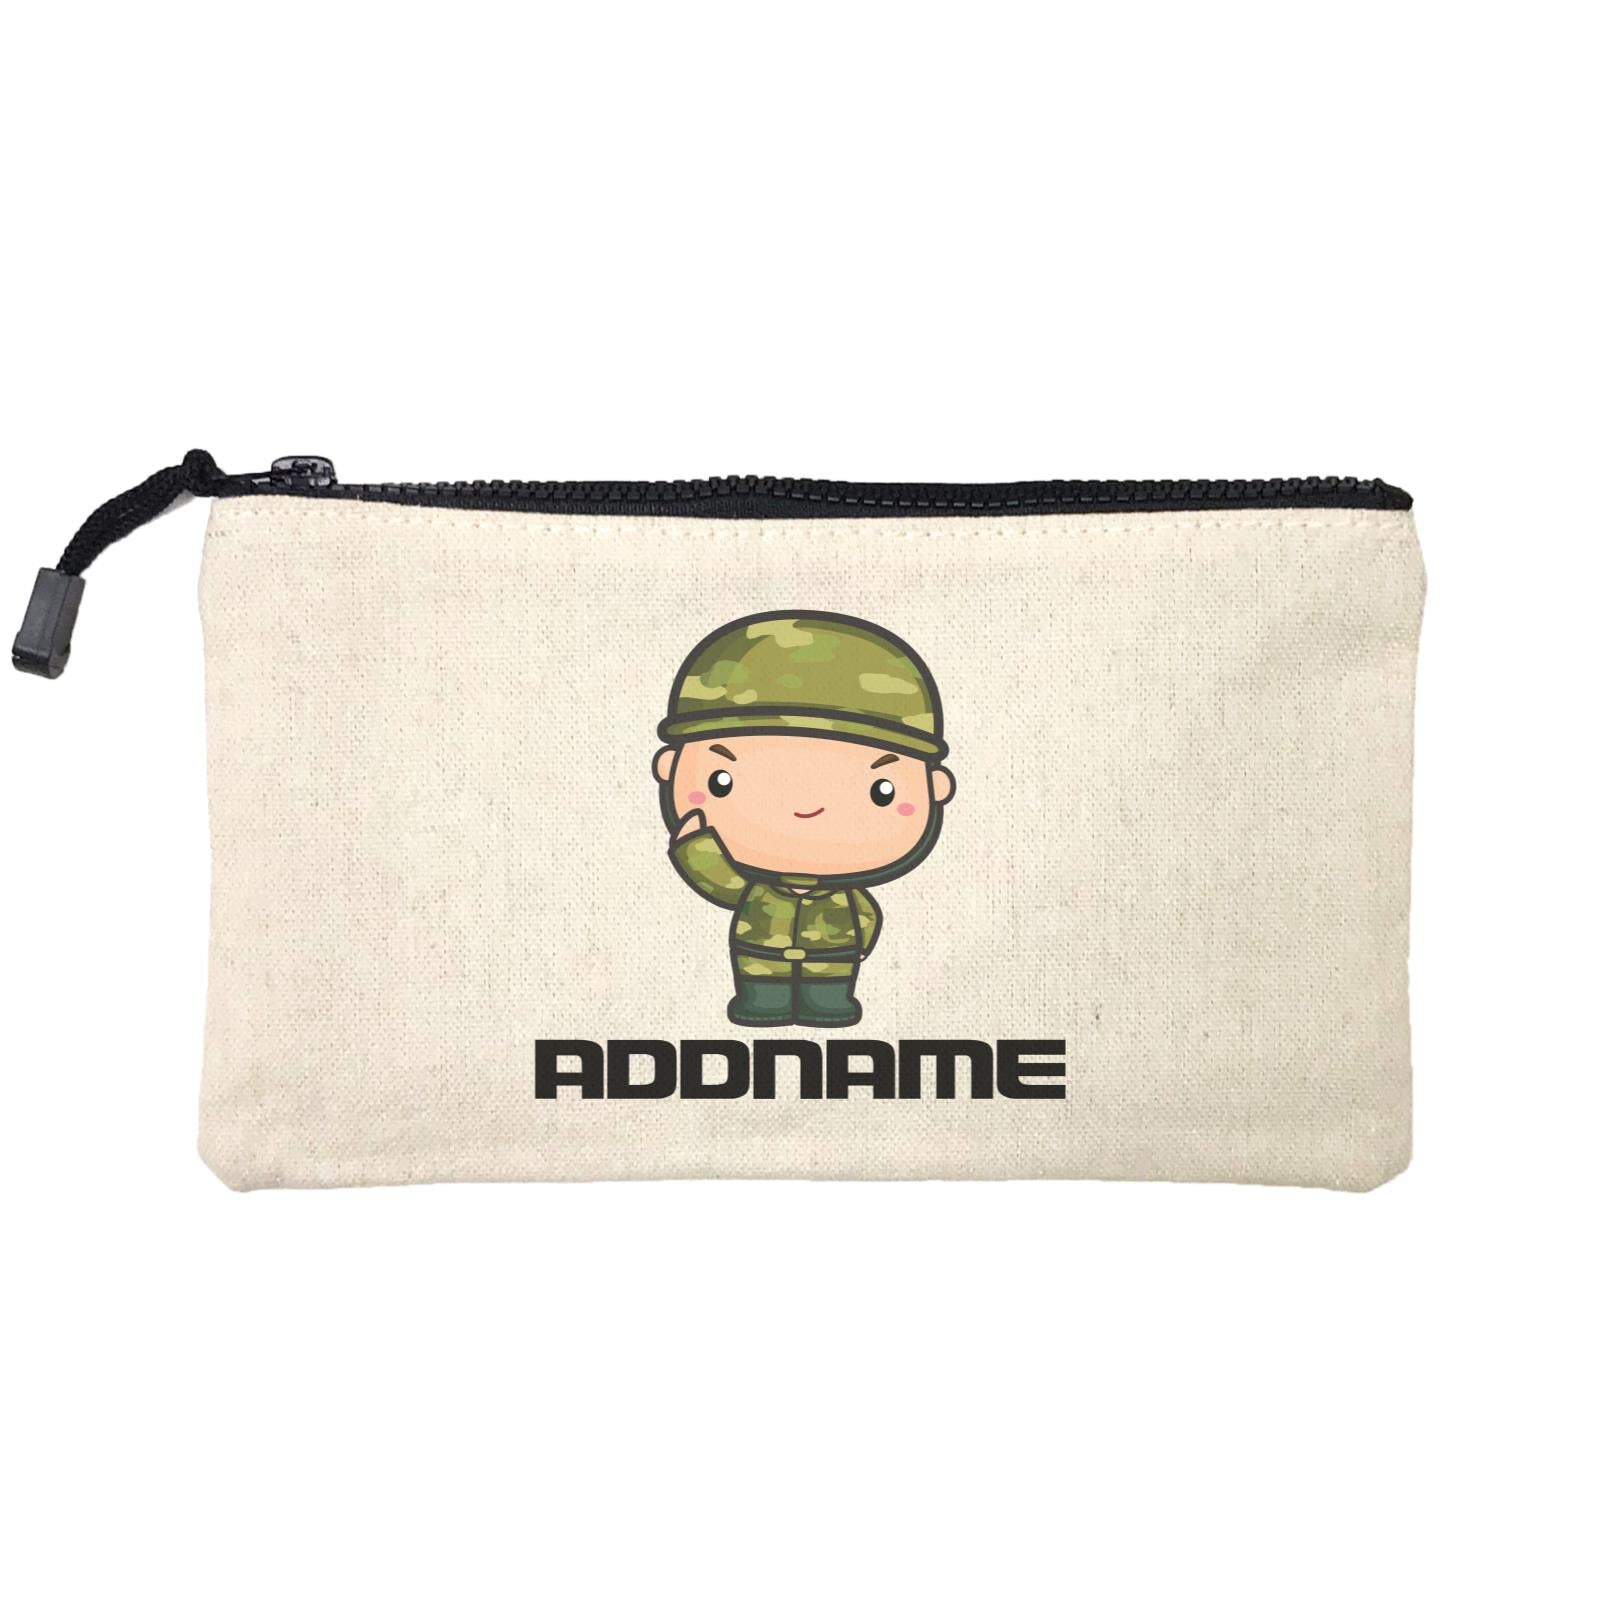 Birthday Battle Theme Army Soldier Boy Addname Mini Accessories Stationery Pouch